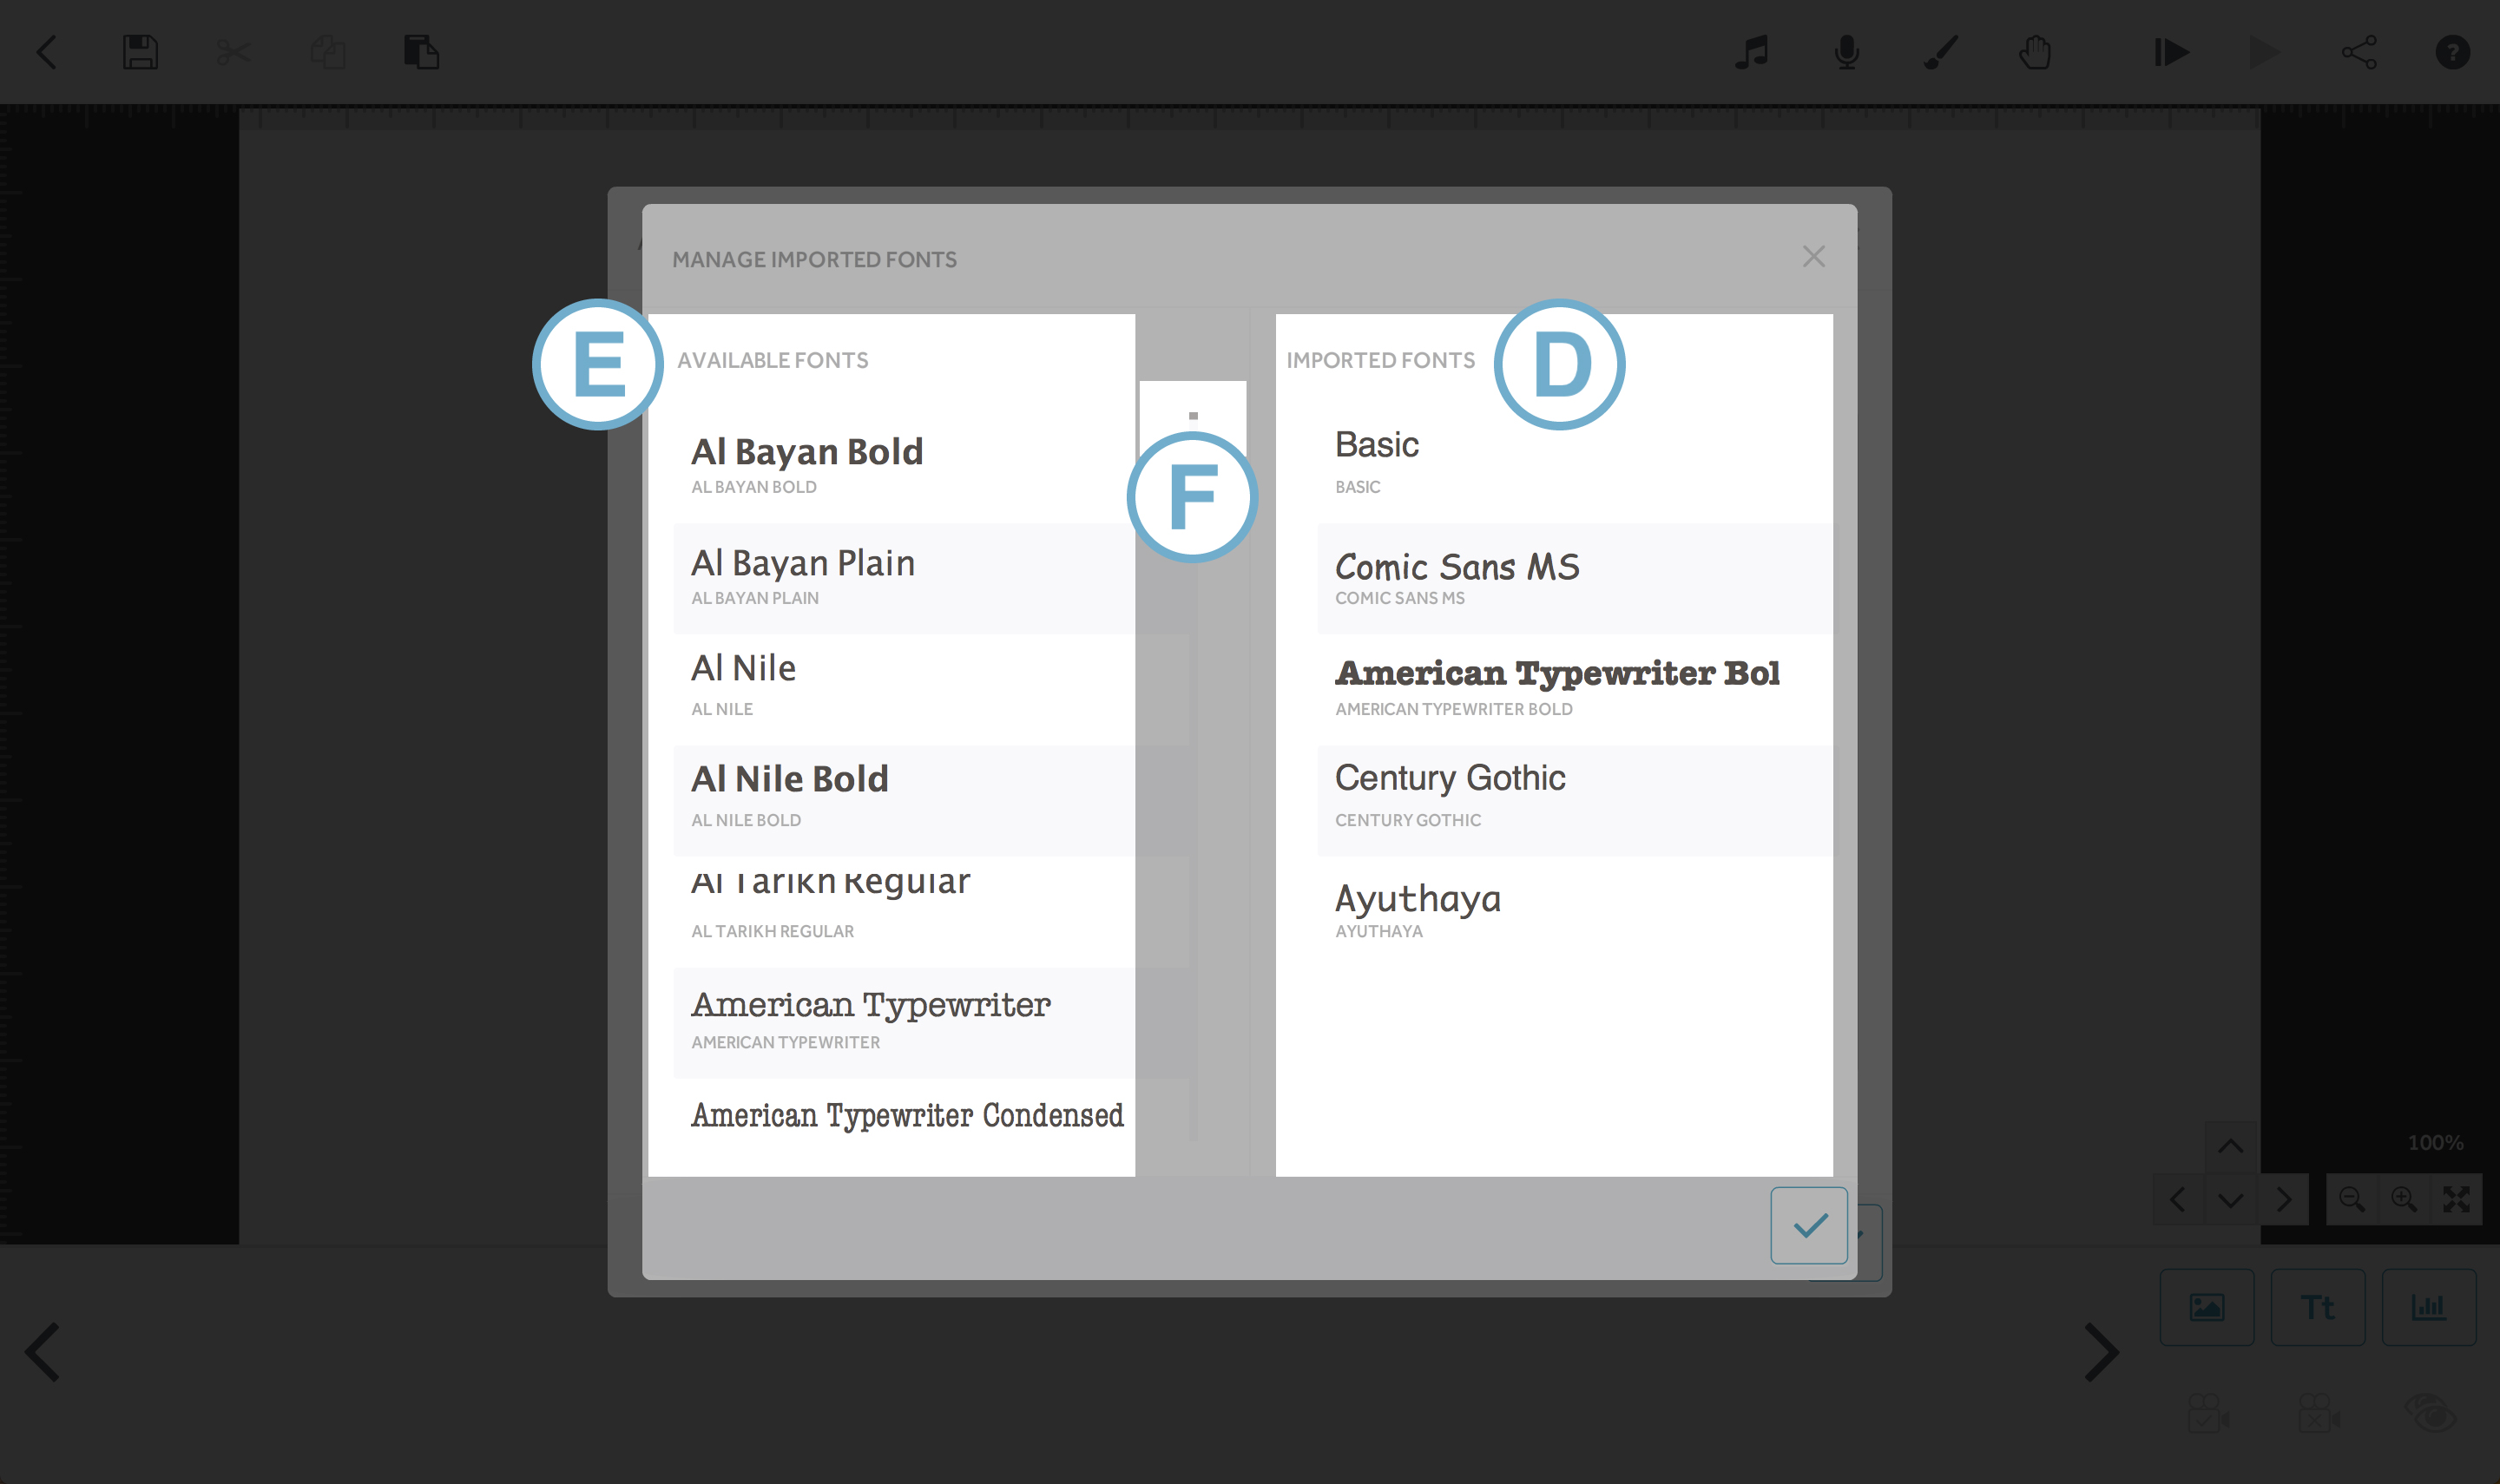 Import fonts : VideoScribe